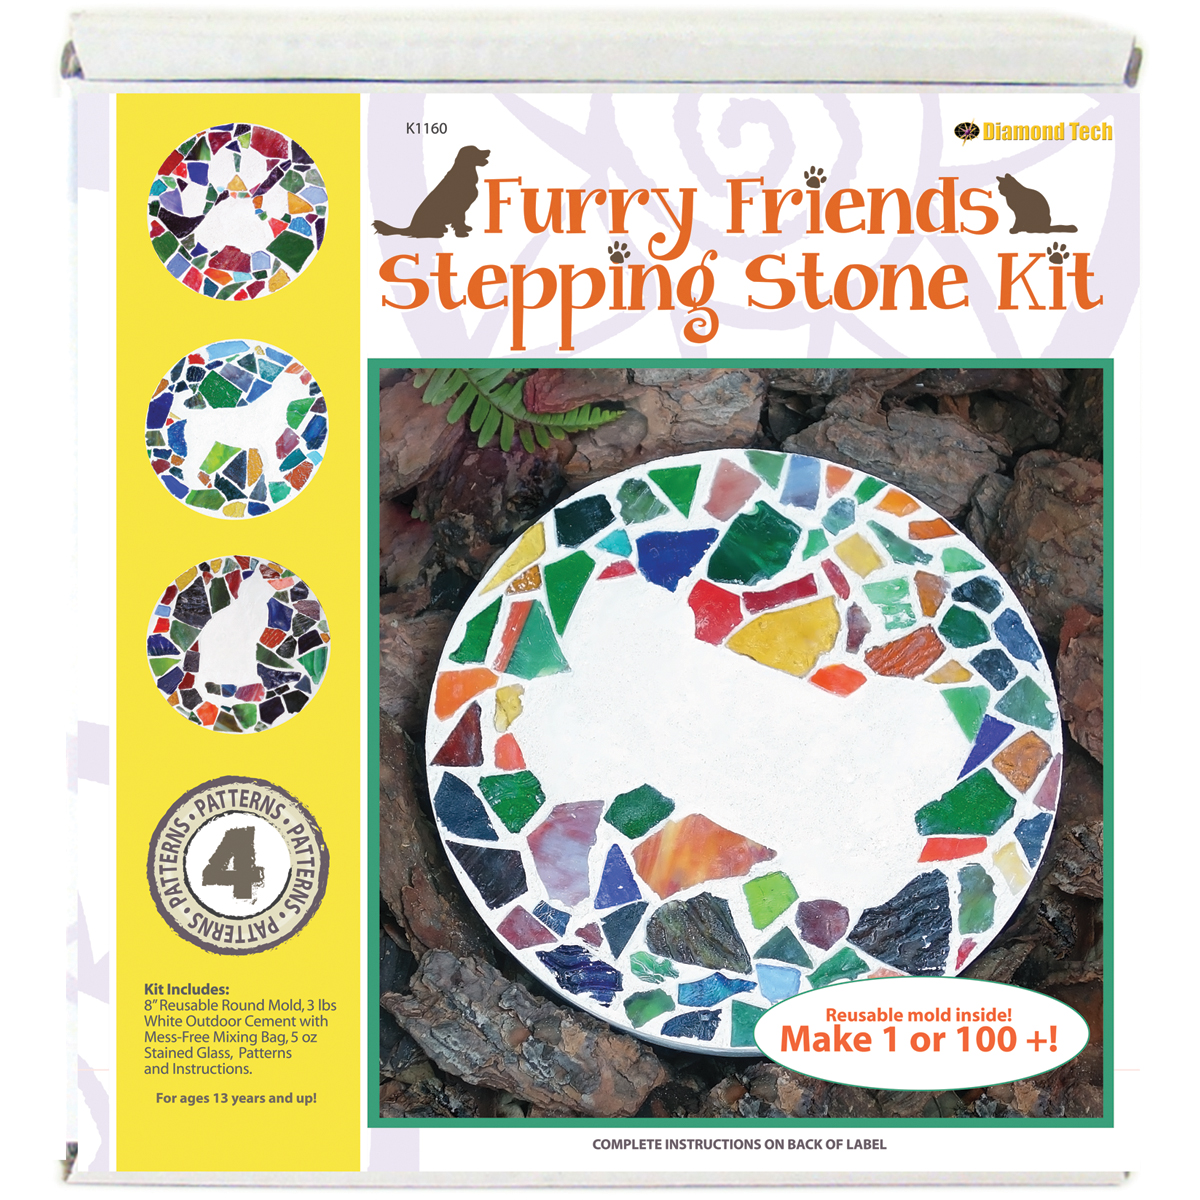 Mosaic Stepping Stone KitFurry Friends